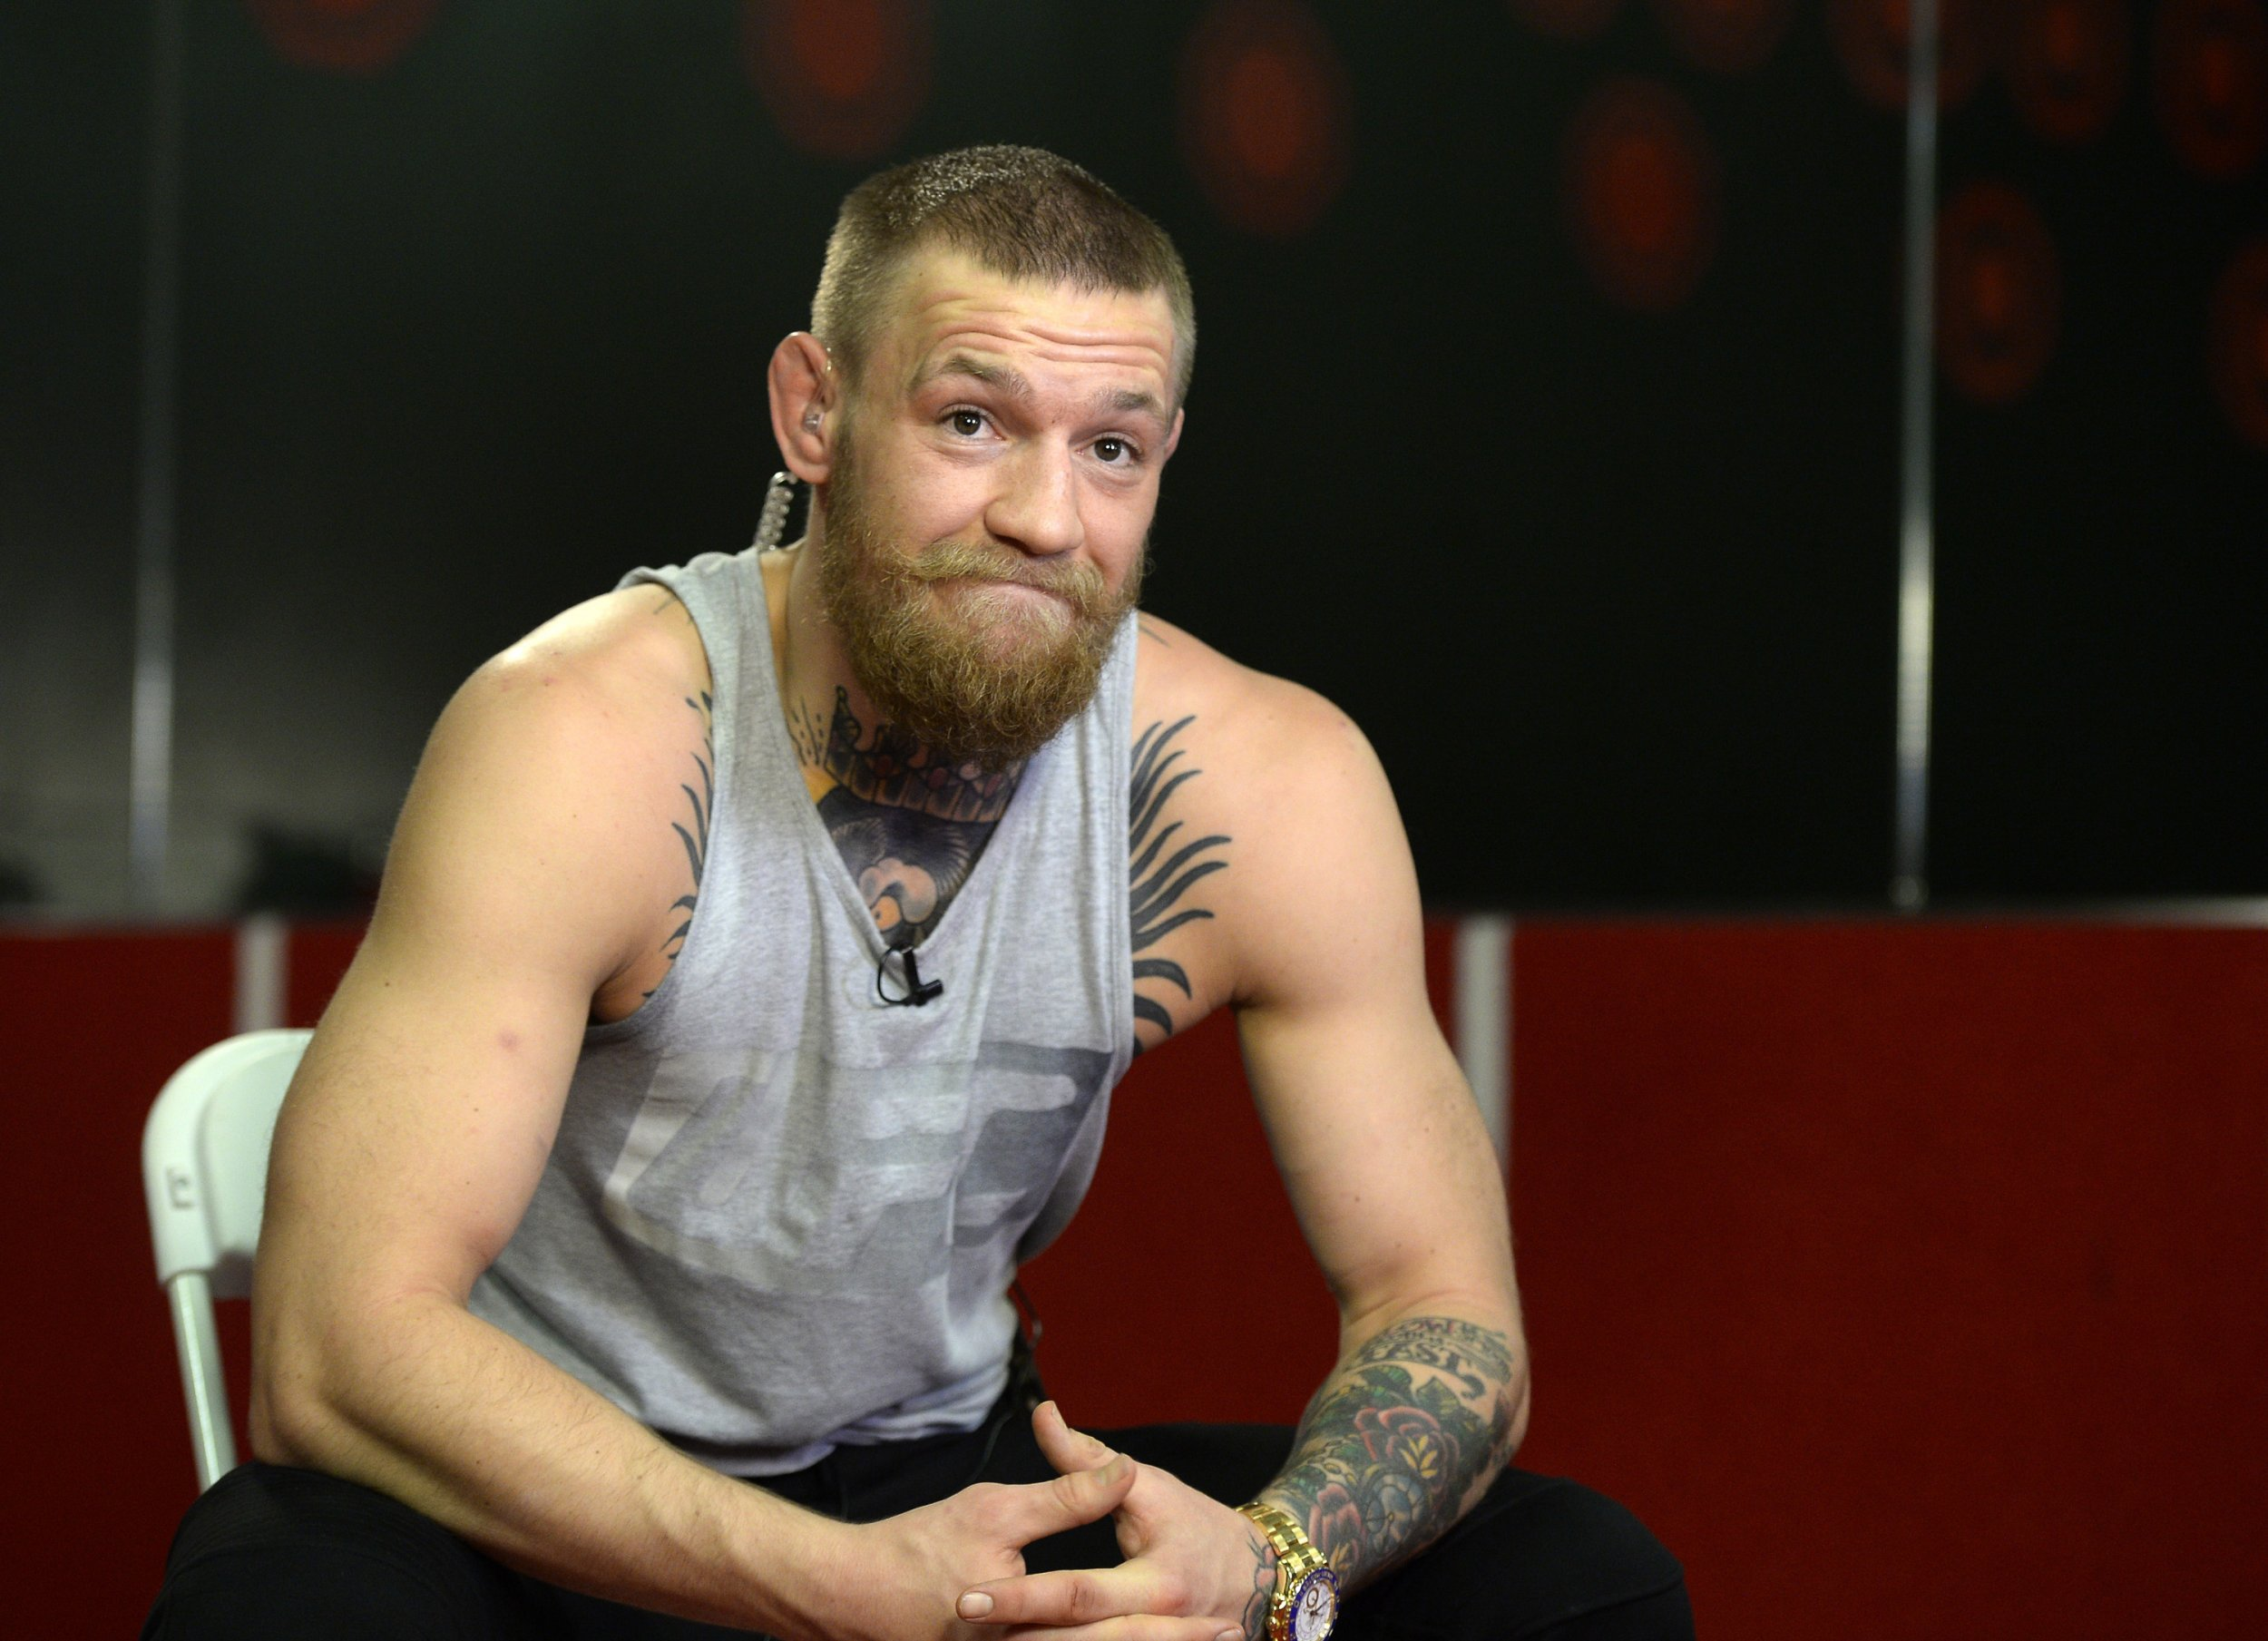 conor mcgregor - photo #5